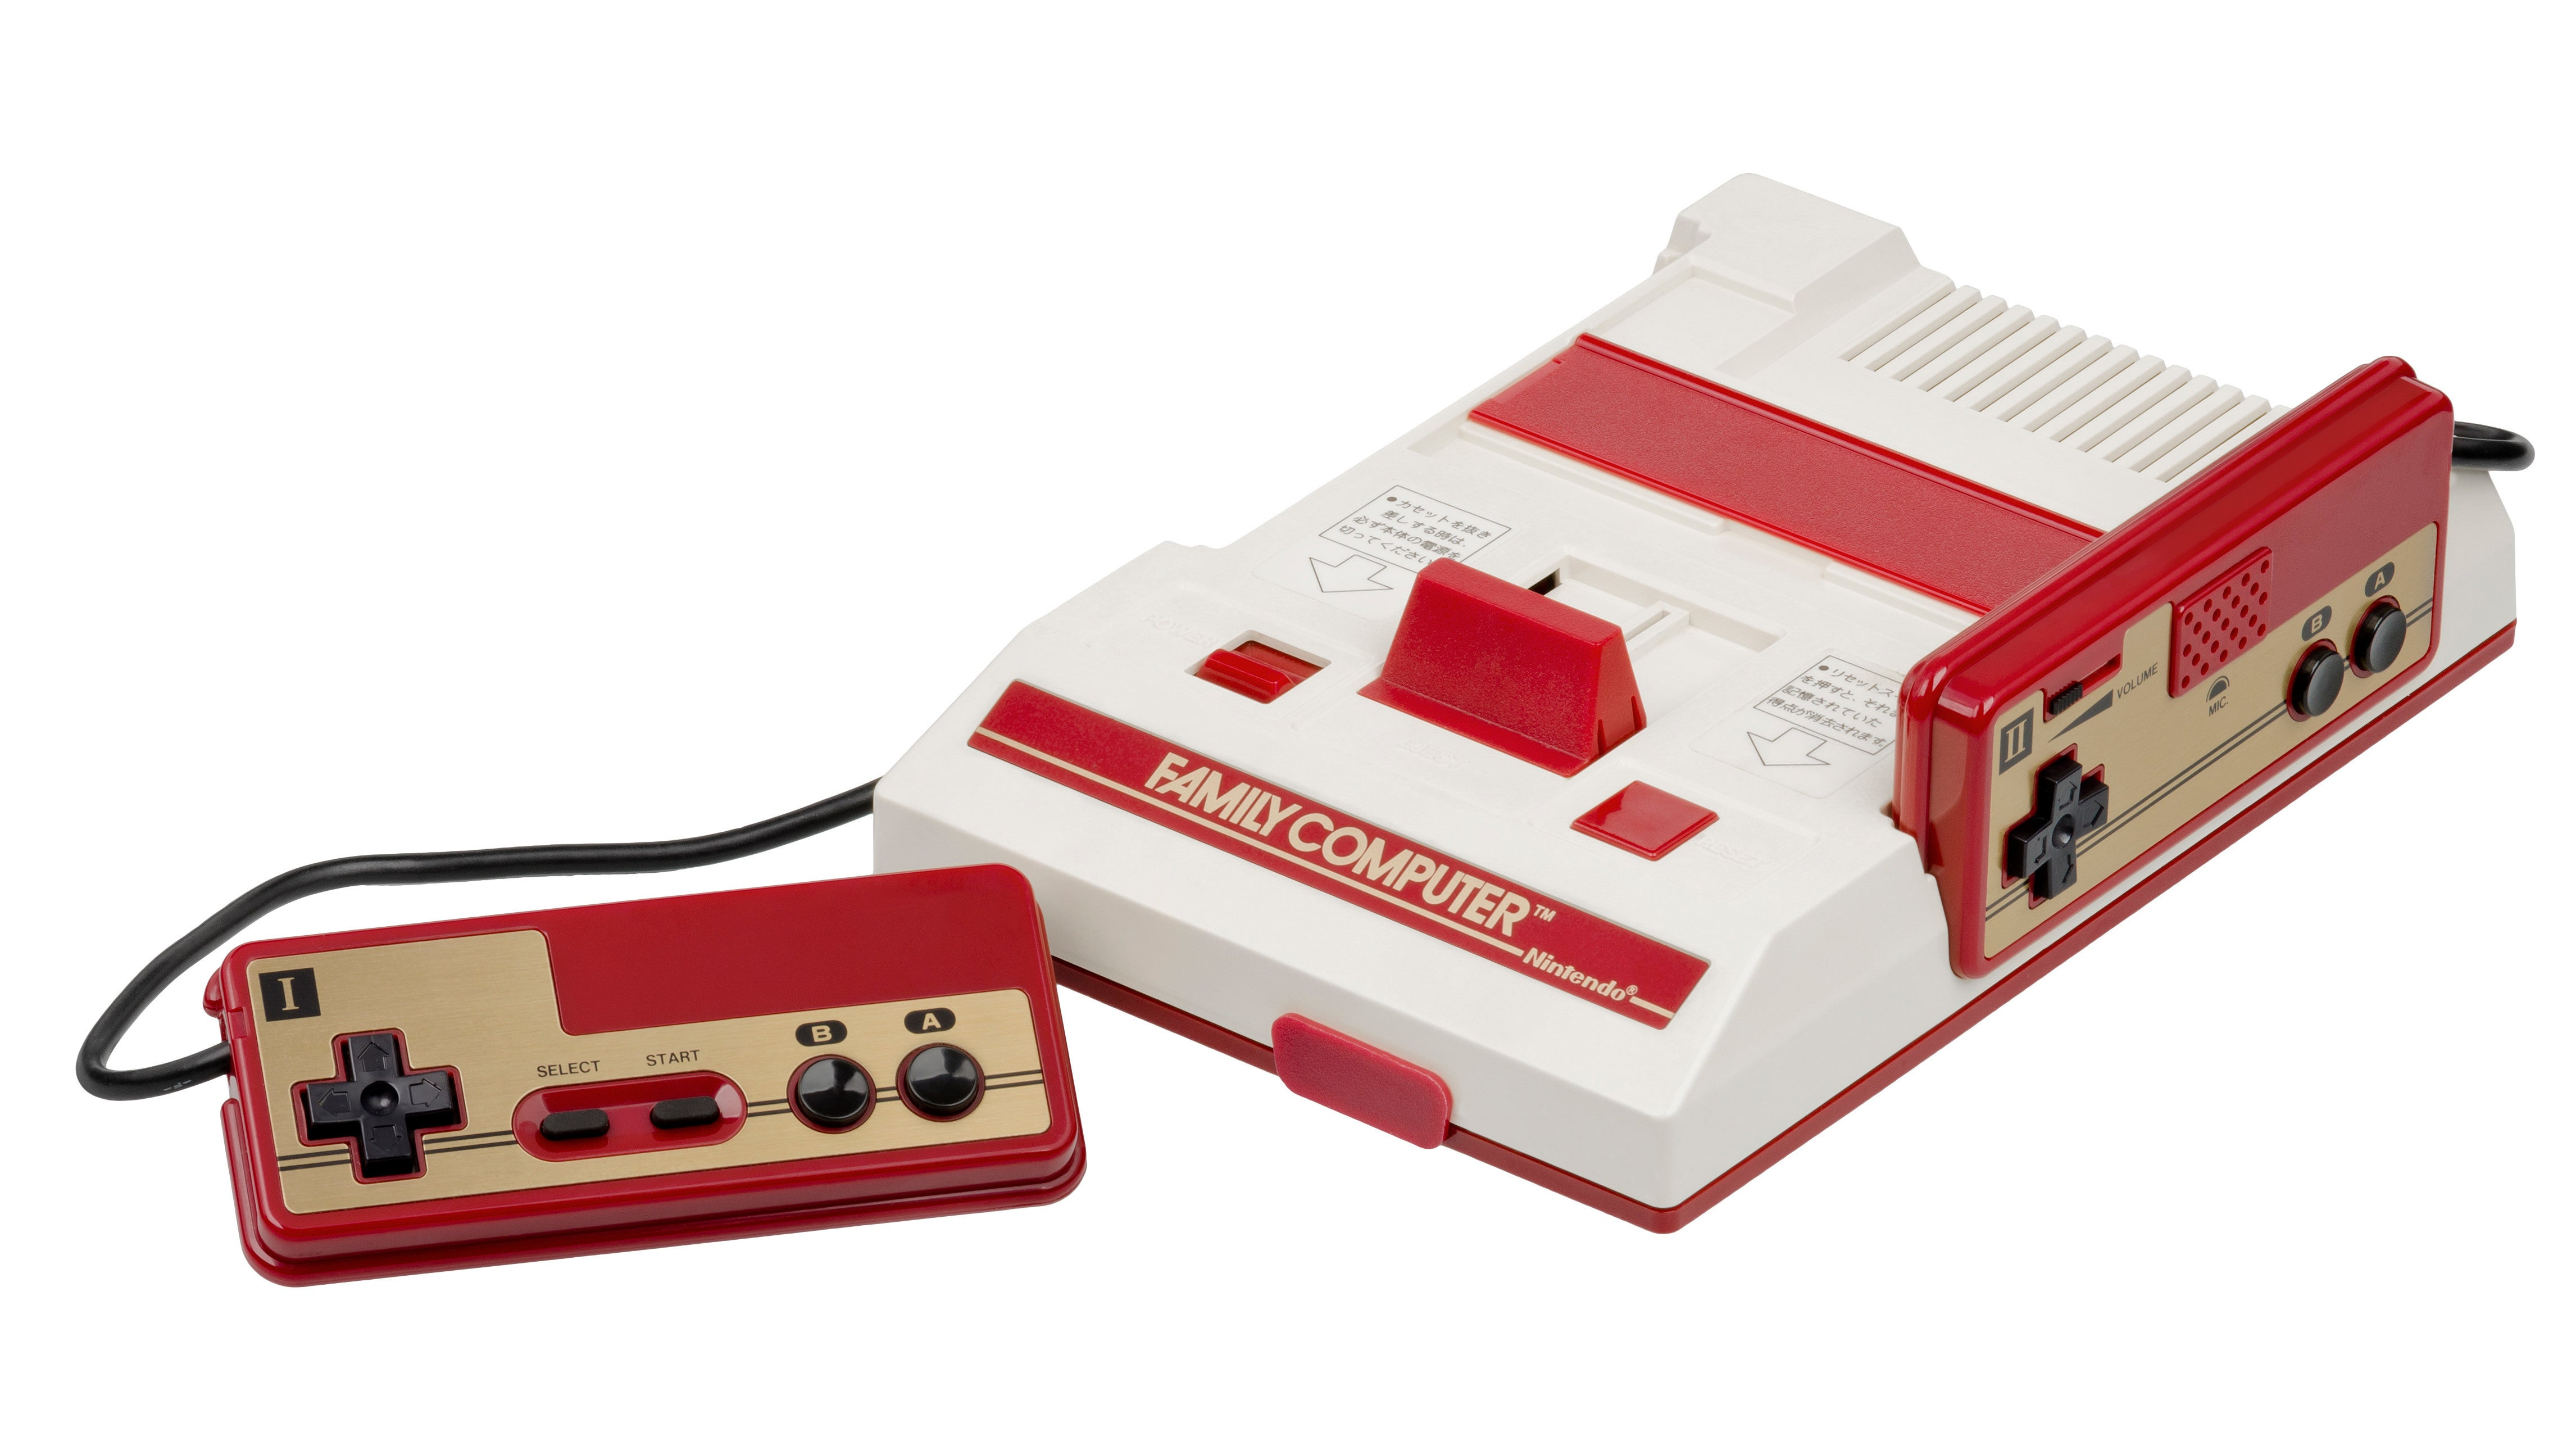 The Famicom's Built-In Microphone Was Wonderfully Weird